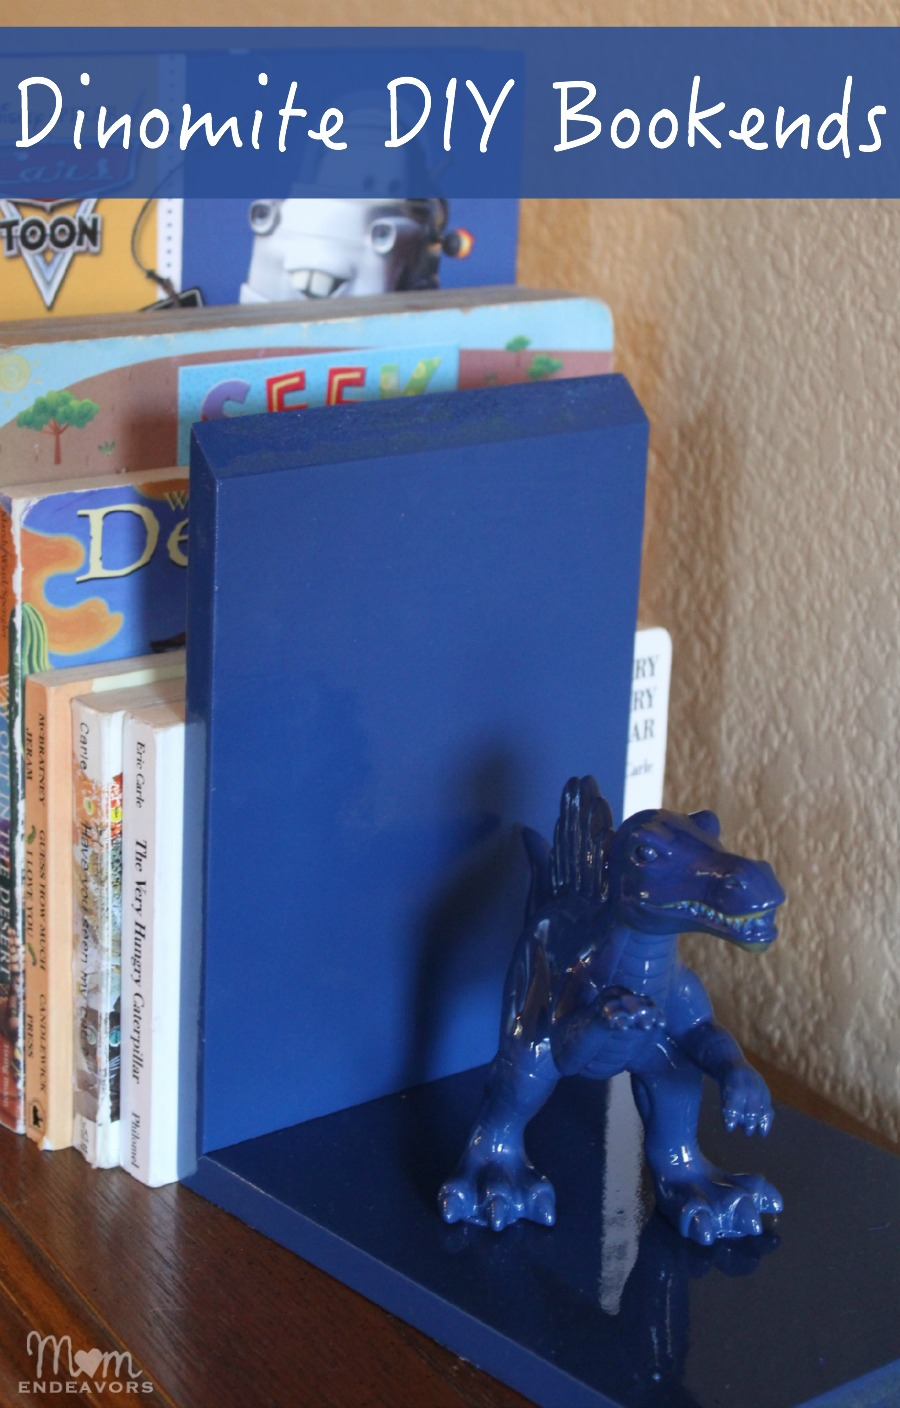 Dinosaur DIY Bookends